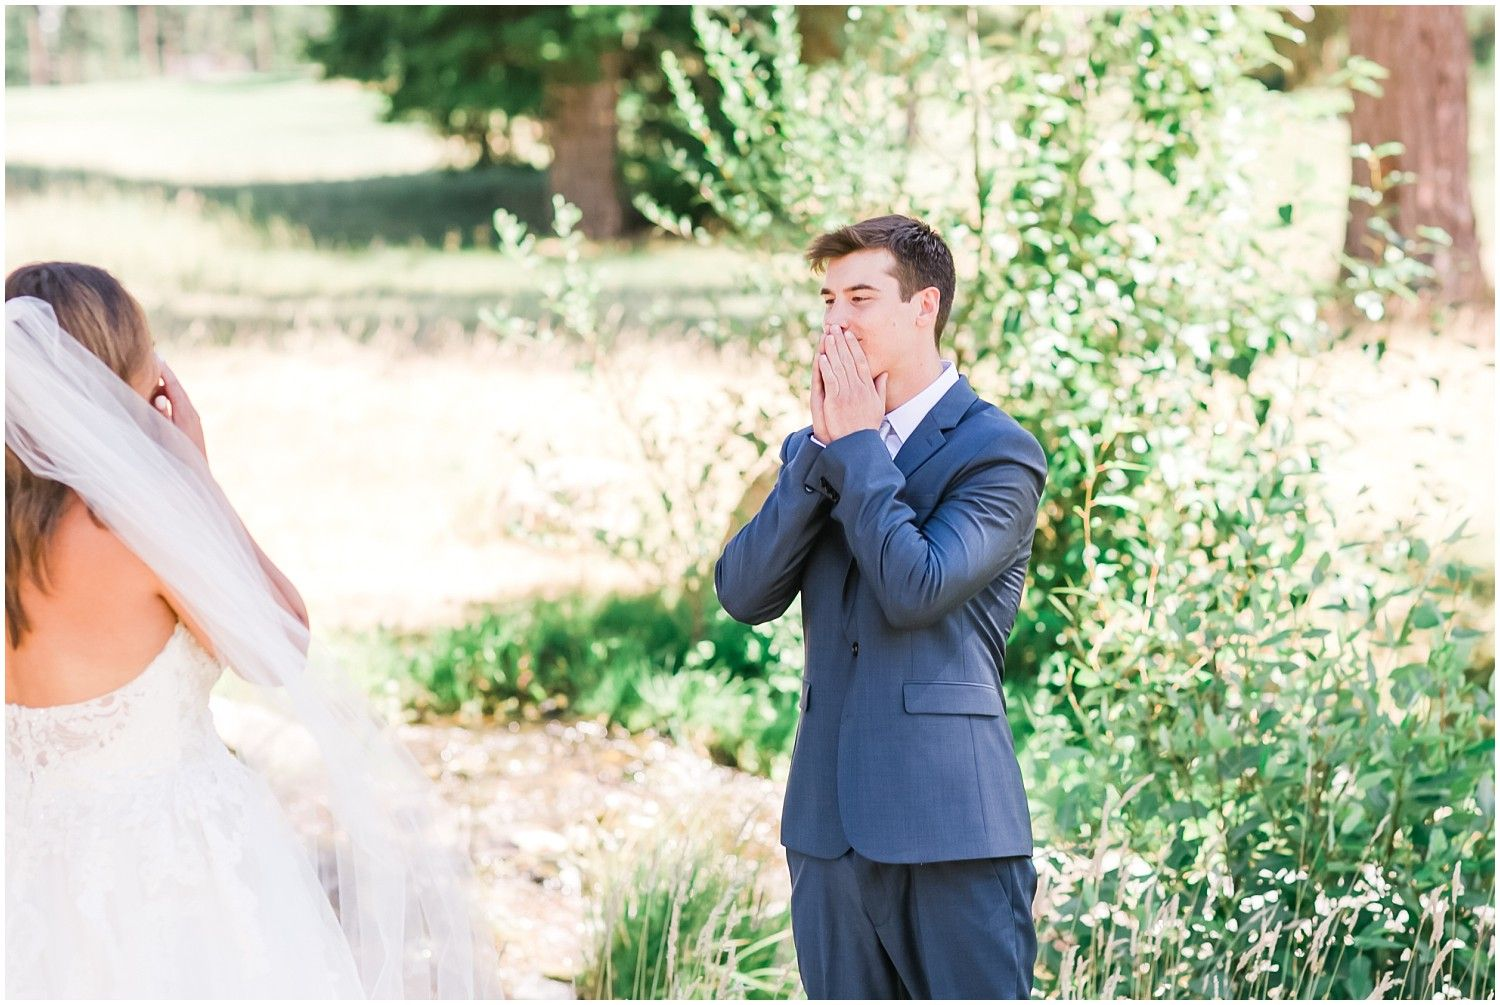 Such an adorable and heart felt first look between the bride u groom